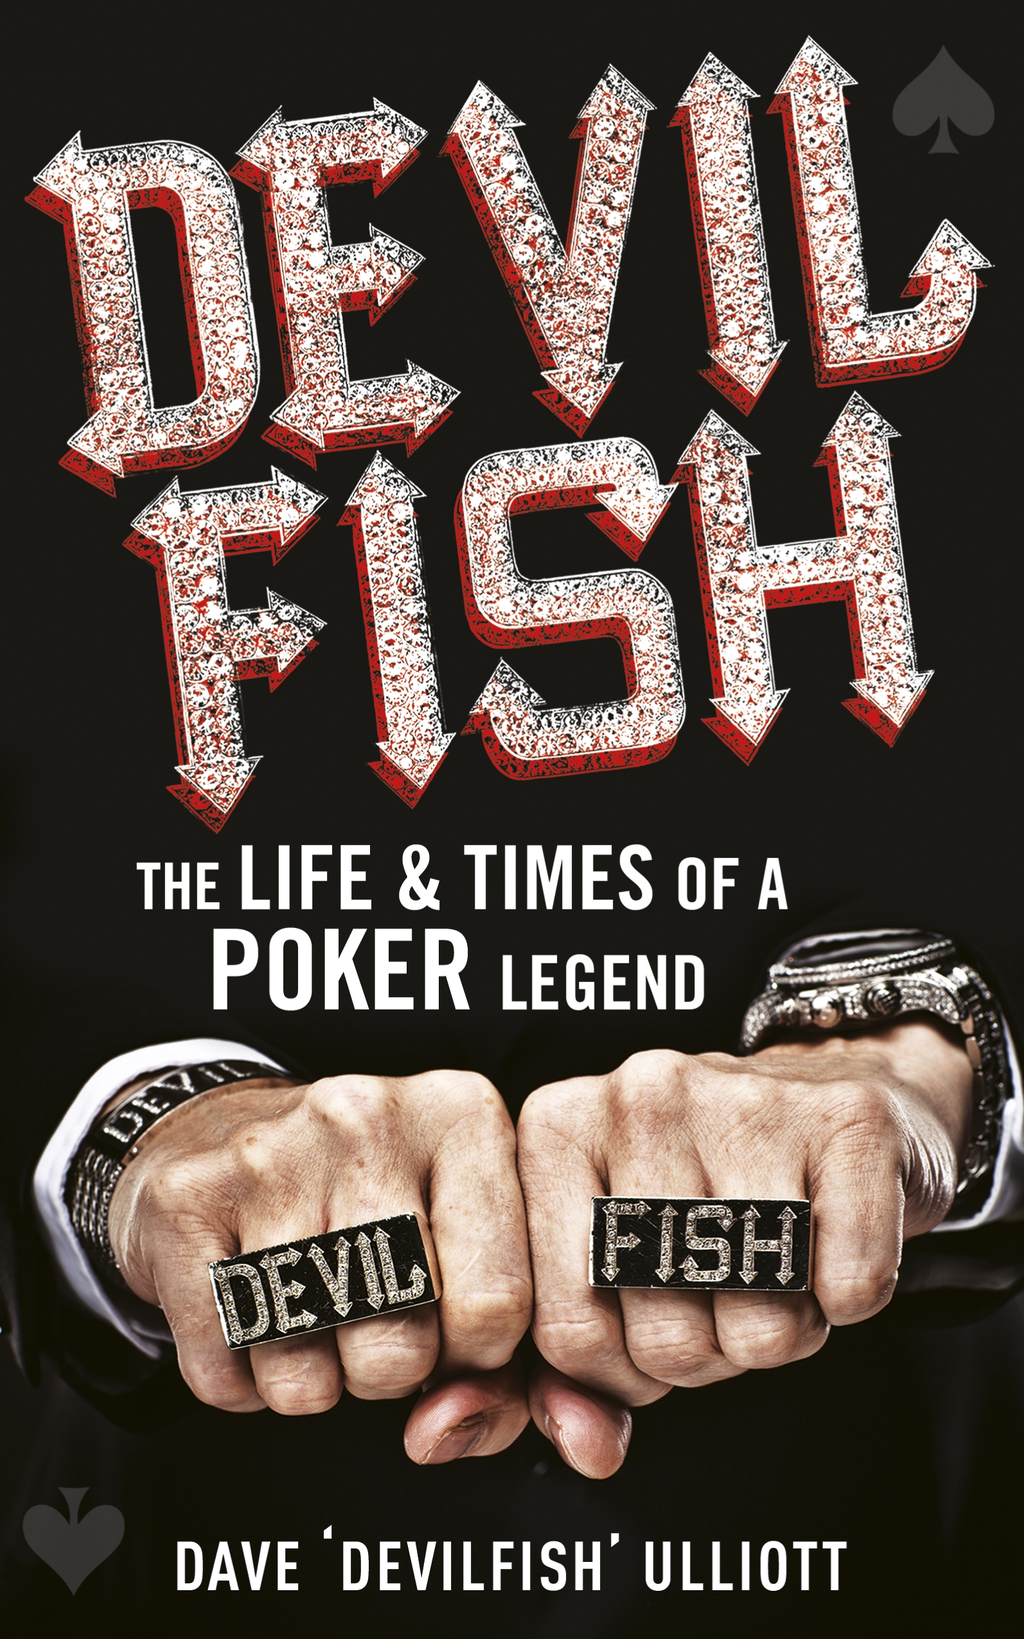 Devilfish The Life & Times of a Poker Legend